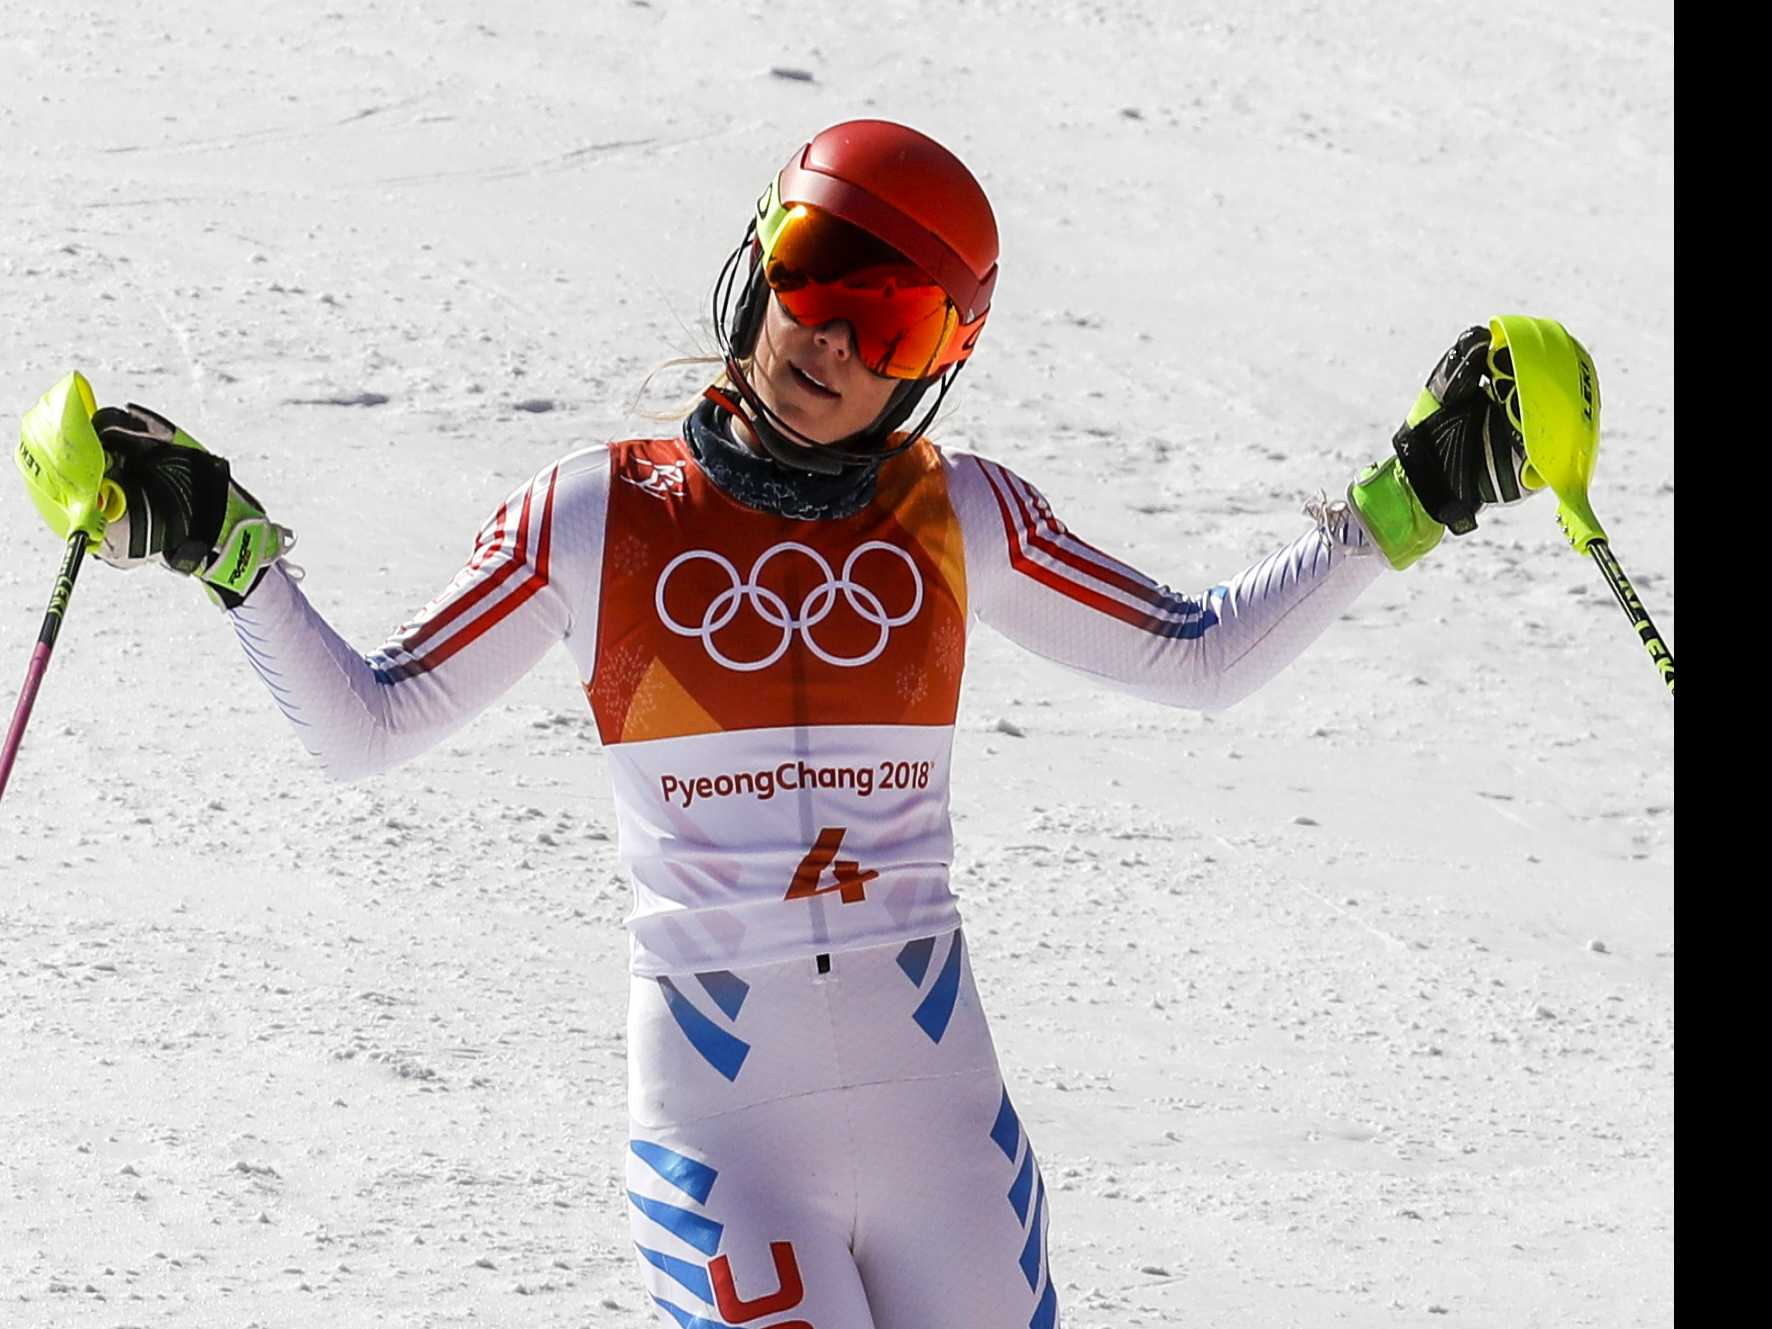 2014 Champ Shiffrin 4th Behind Hansdotter in Olympic Slalom